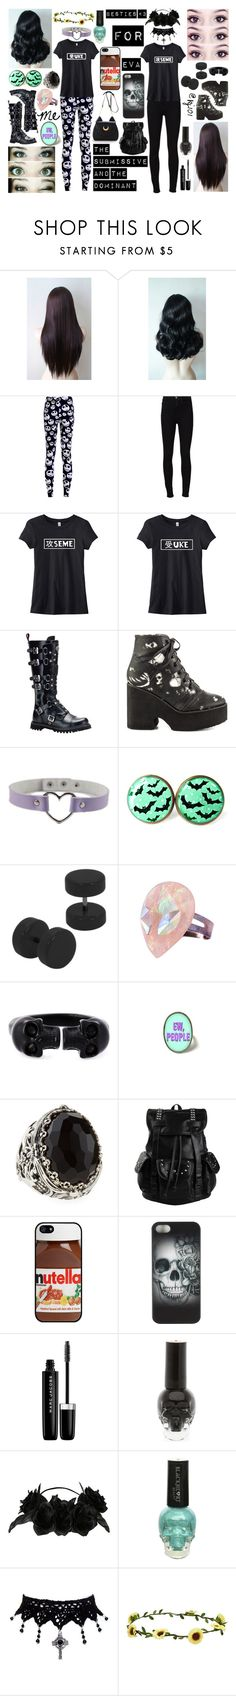 """@kj101 and Me! <3"" by tabithahallows ❤ liked on Polyvore featuring Bettie Page, Frame, Demonia, Iron Fist, Alexander McQueen, Konstantino, AT&T, Metal Mulisha, Marc Jacobs and Aéropostale"